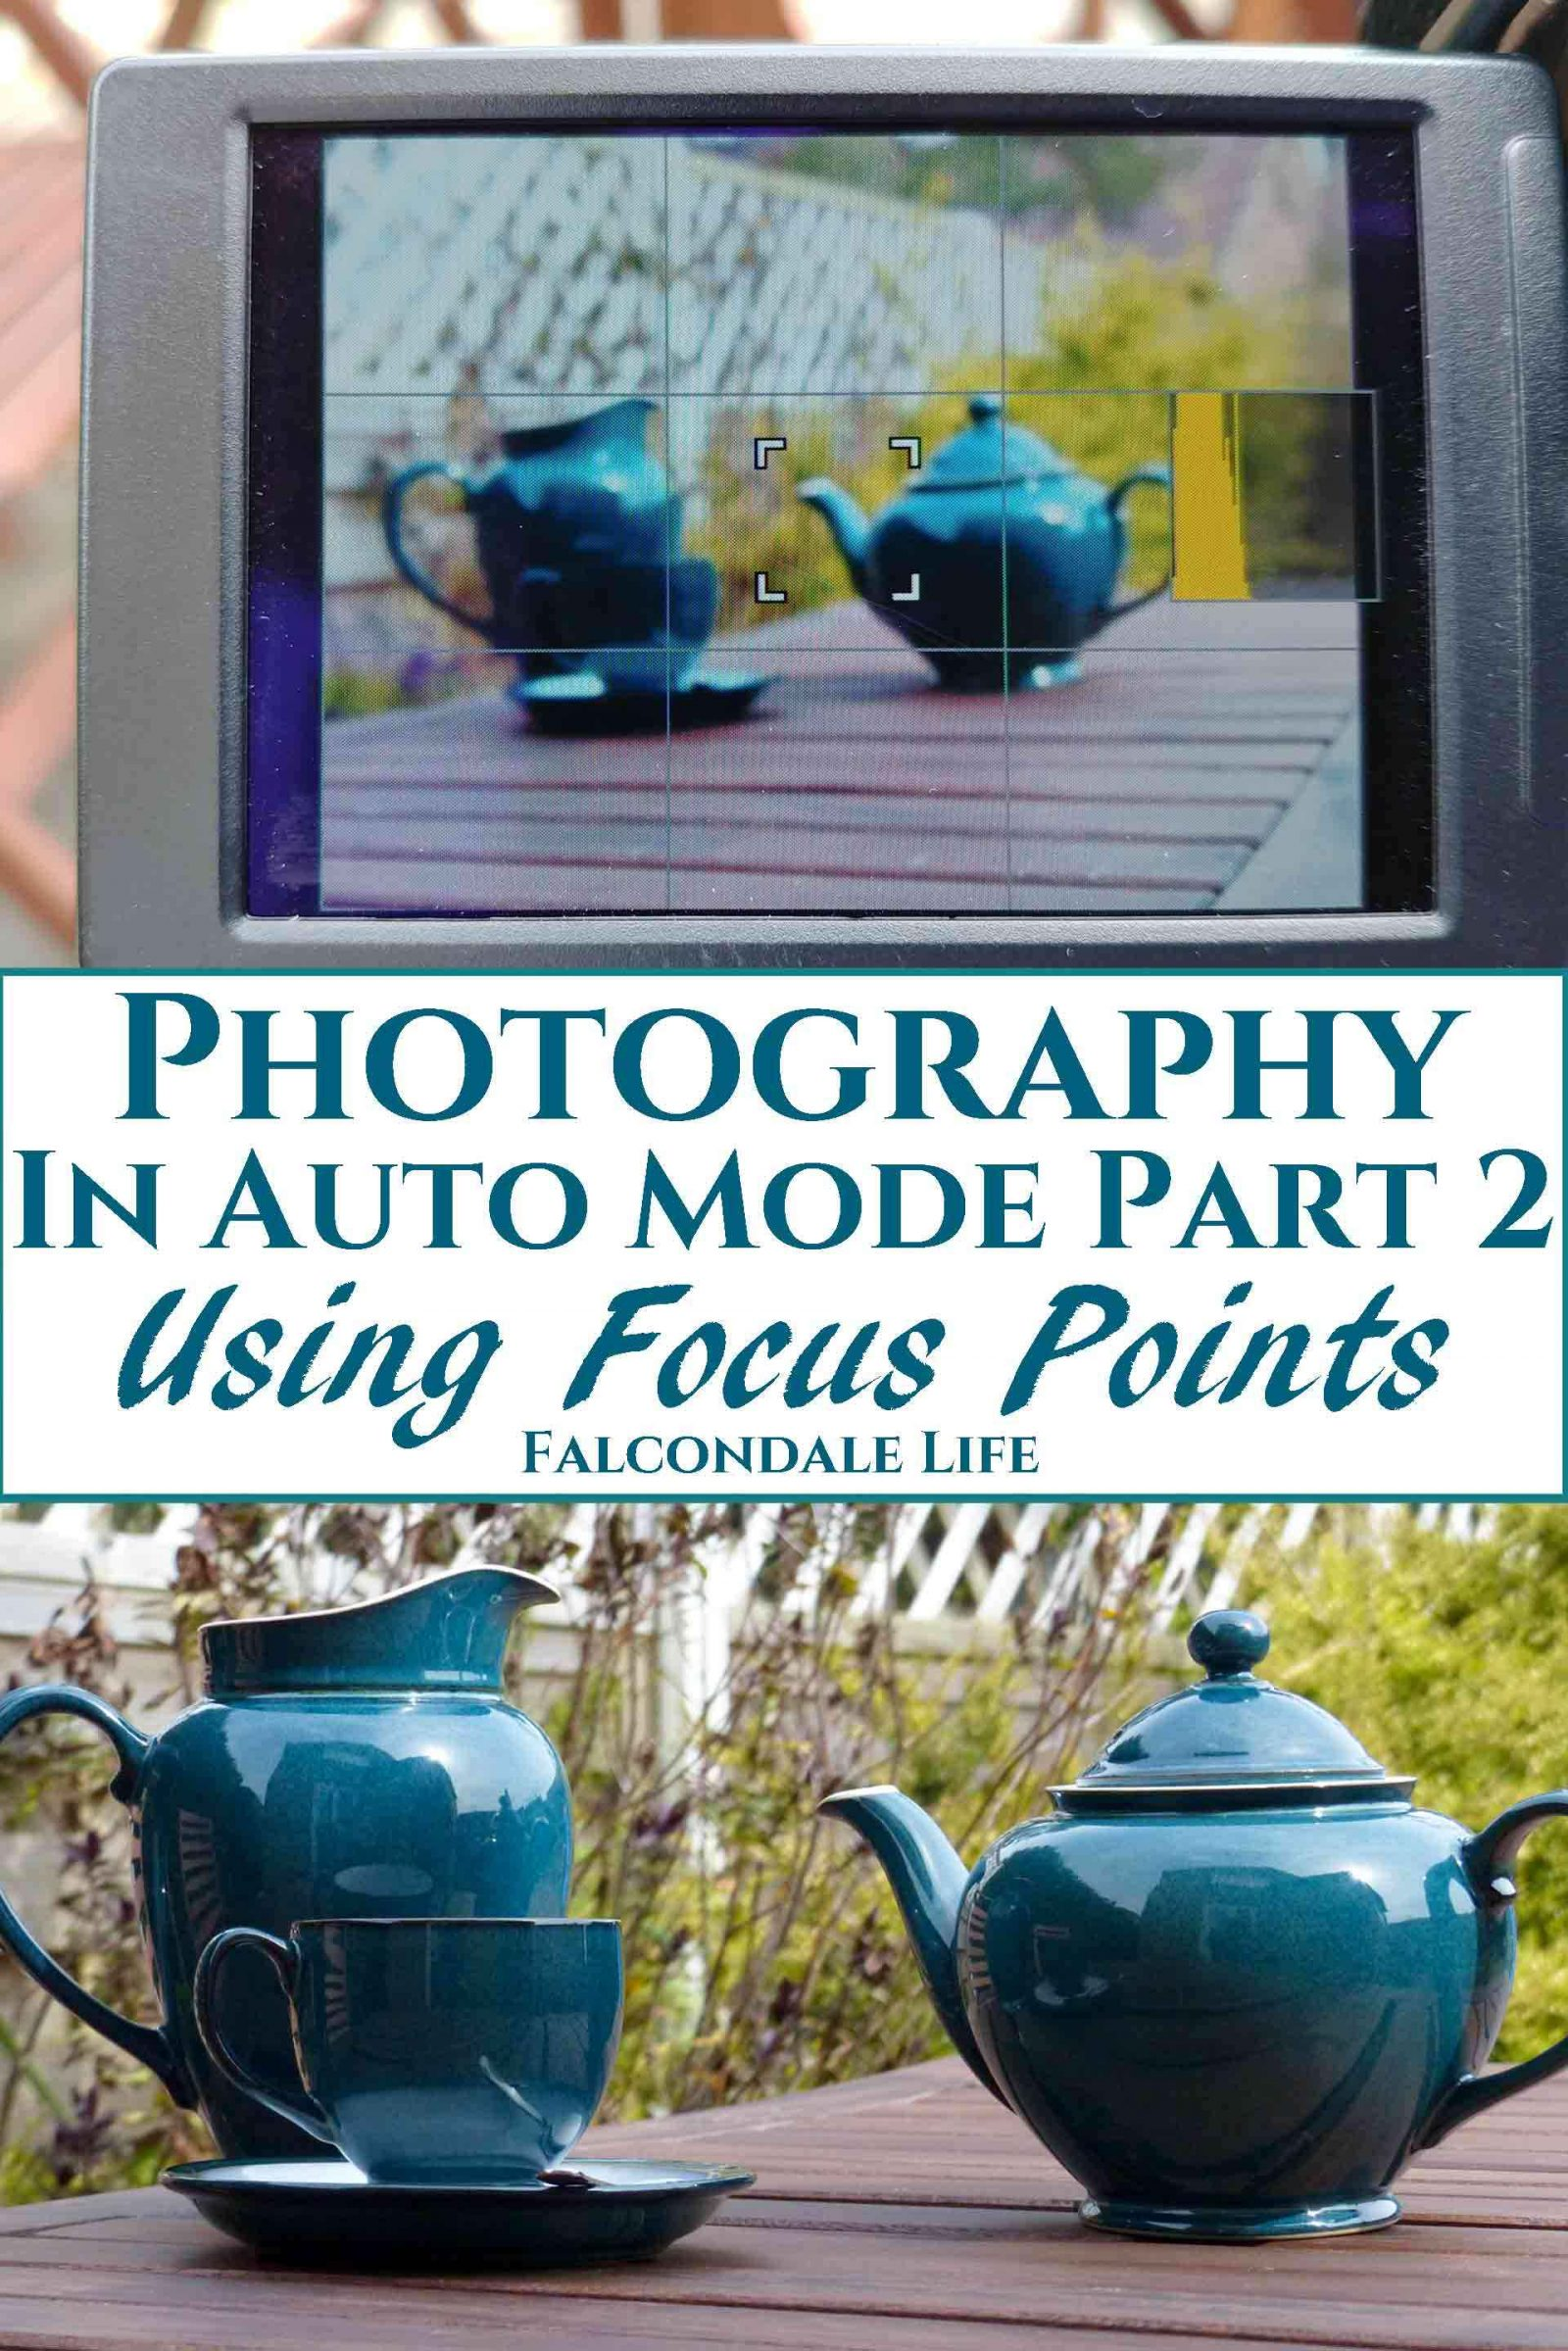 Photography in Auto Mode, Better use of Focus Points on Falcondale Life blog. Simple auto focus tips for every type of camera shooting in auto mode. Get control of your focus points whether on smartphone or DSLR. Helping you to point and shoot better as a quick win for learner photographers. Image description: Camera LCD screen showing focus point, tea set in the garden and blog title.